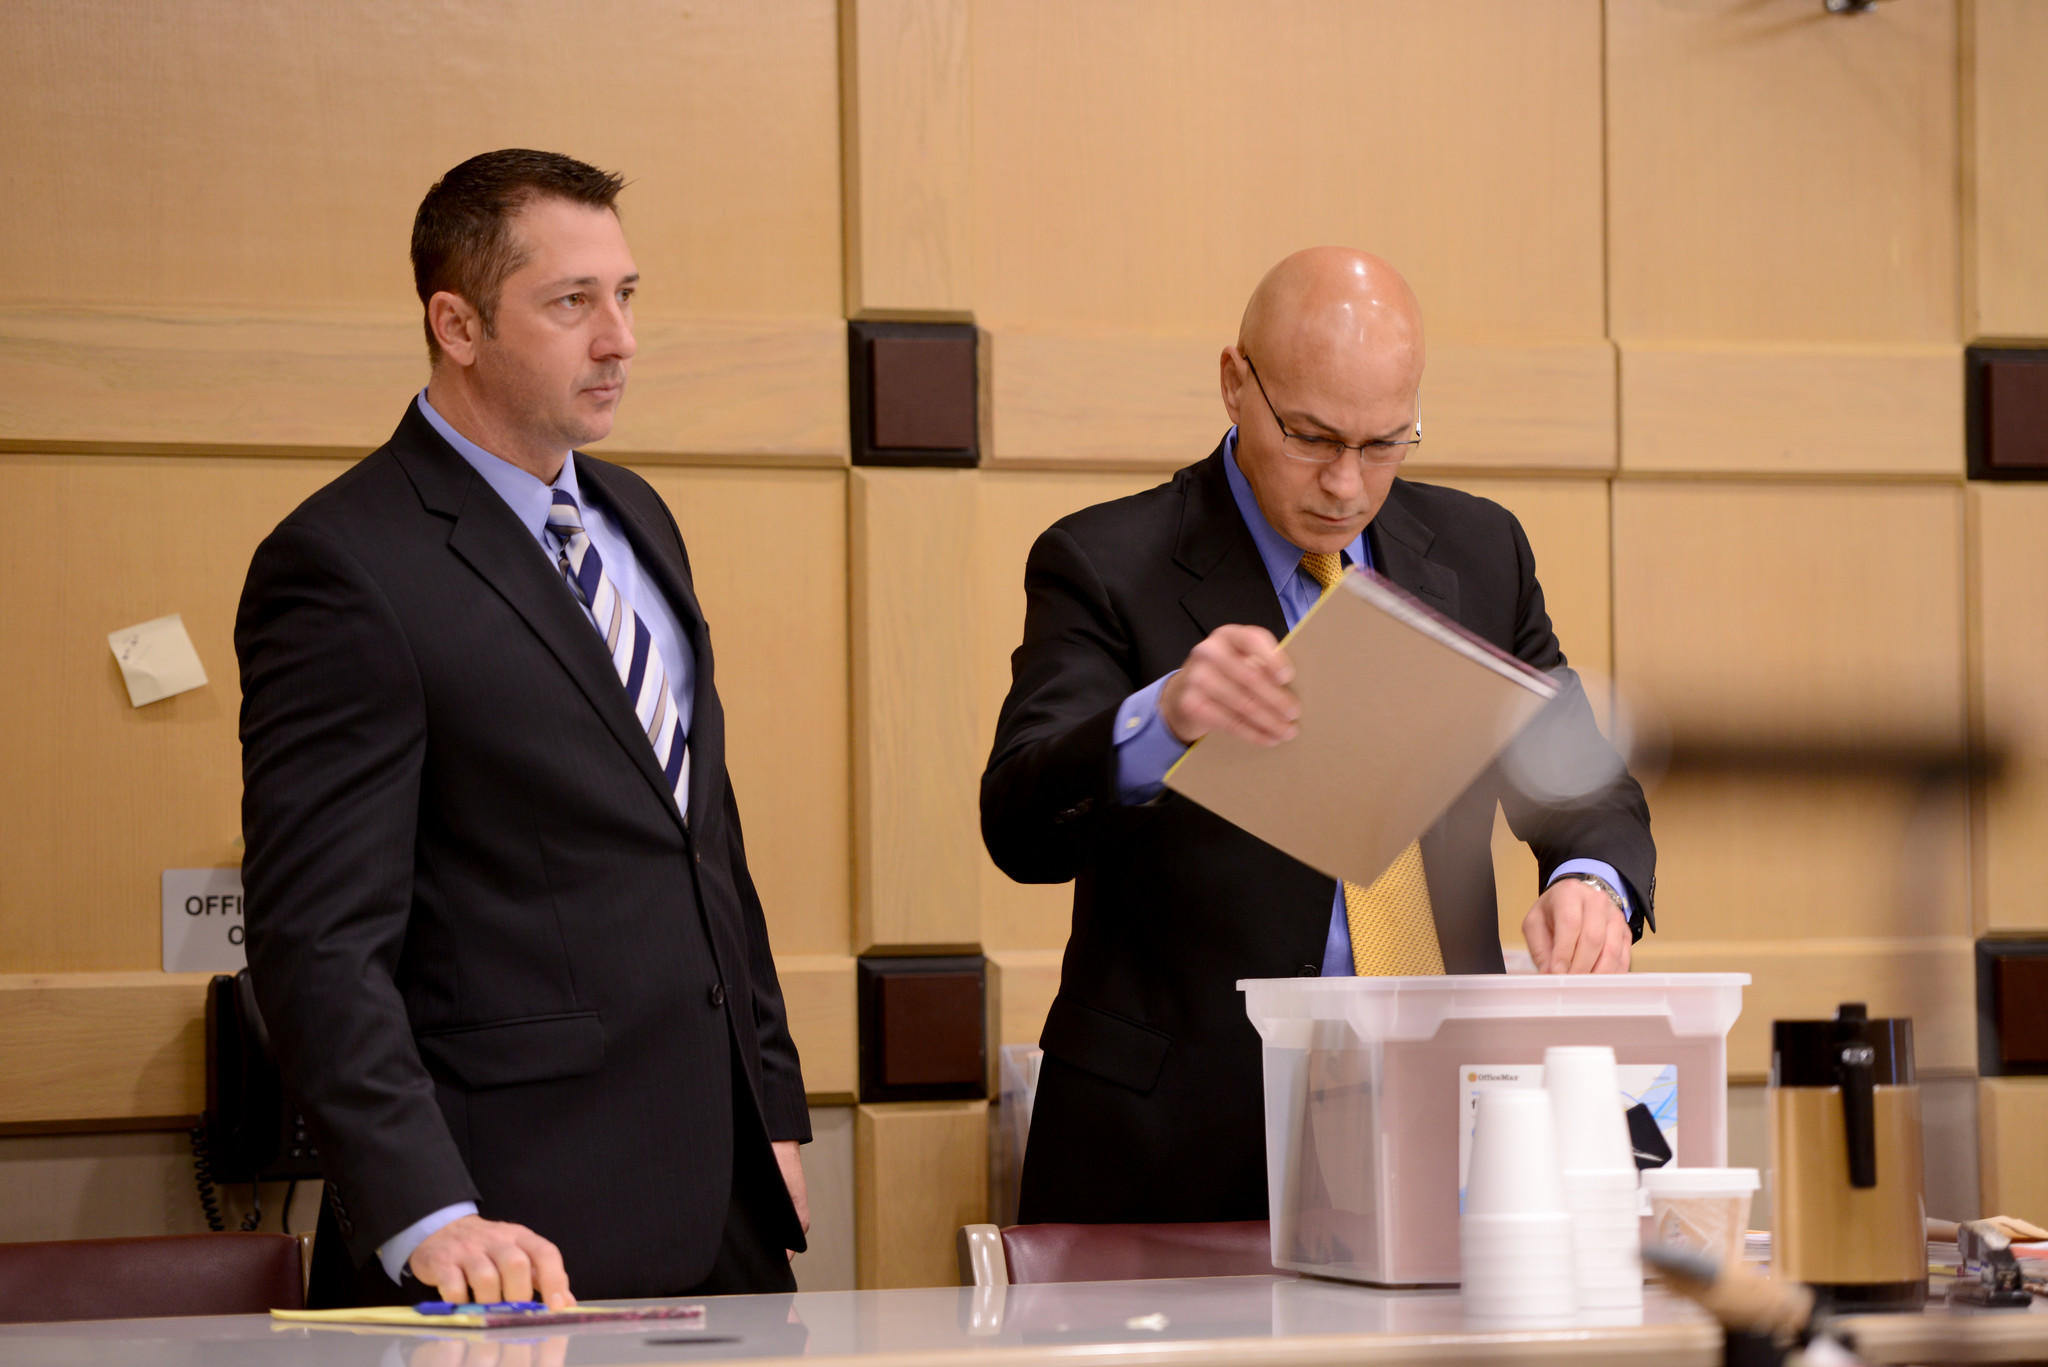 Paul Pletcher, left, the BSO deputy fired in 2012 after a road rage incident was recorded by cellphone, stands next to his attorney Al Milian before his trial begins Tuesday in Fort Lauderdale.